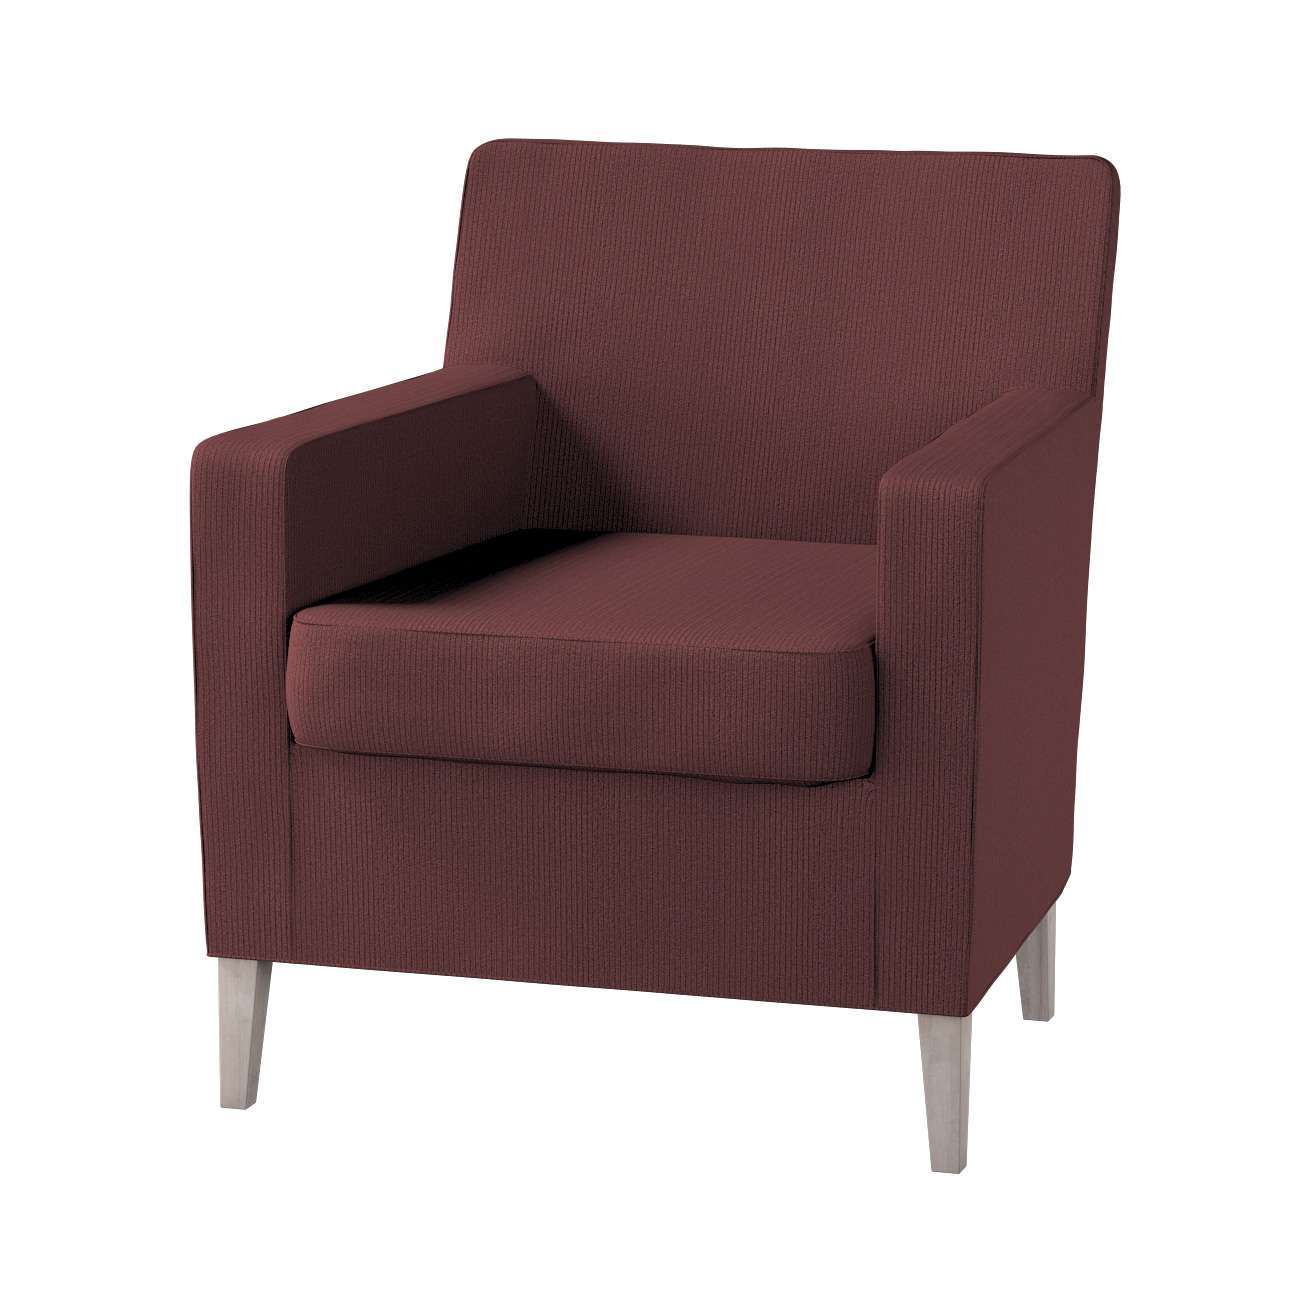 Karlstad tall chair cover Karlstad armchair cover in collection Manchester, fabric: 103-56